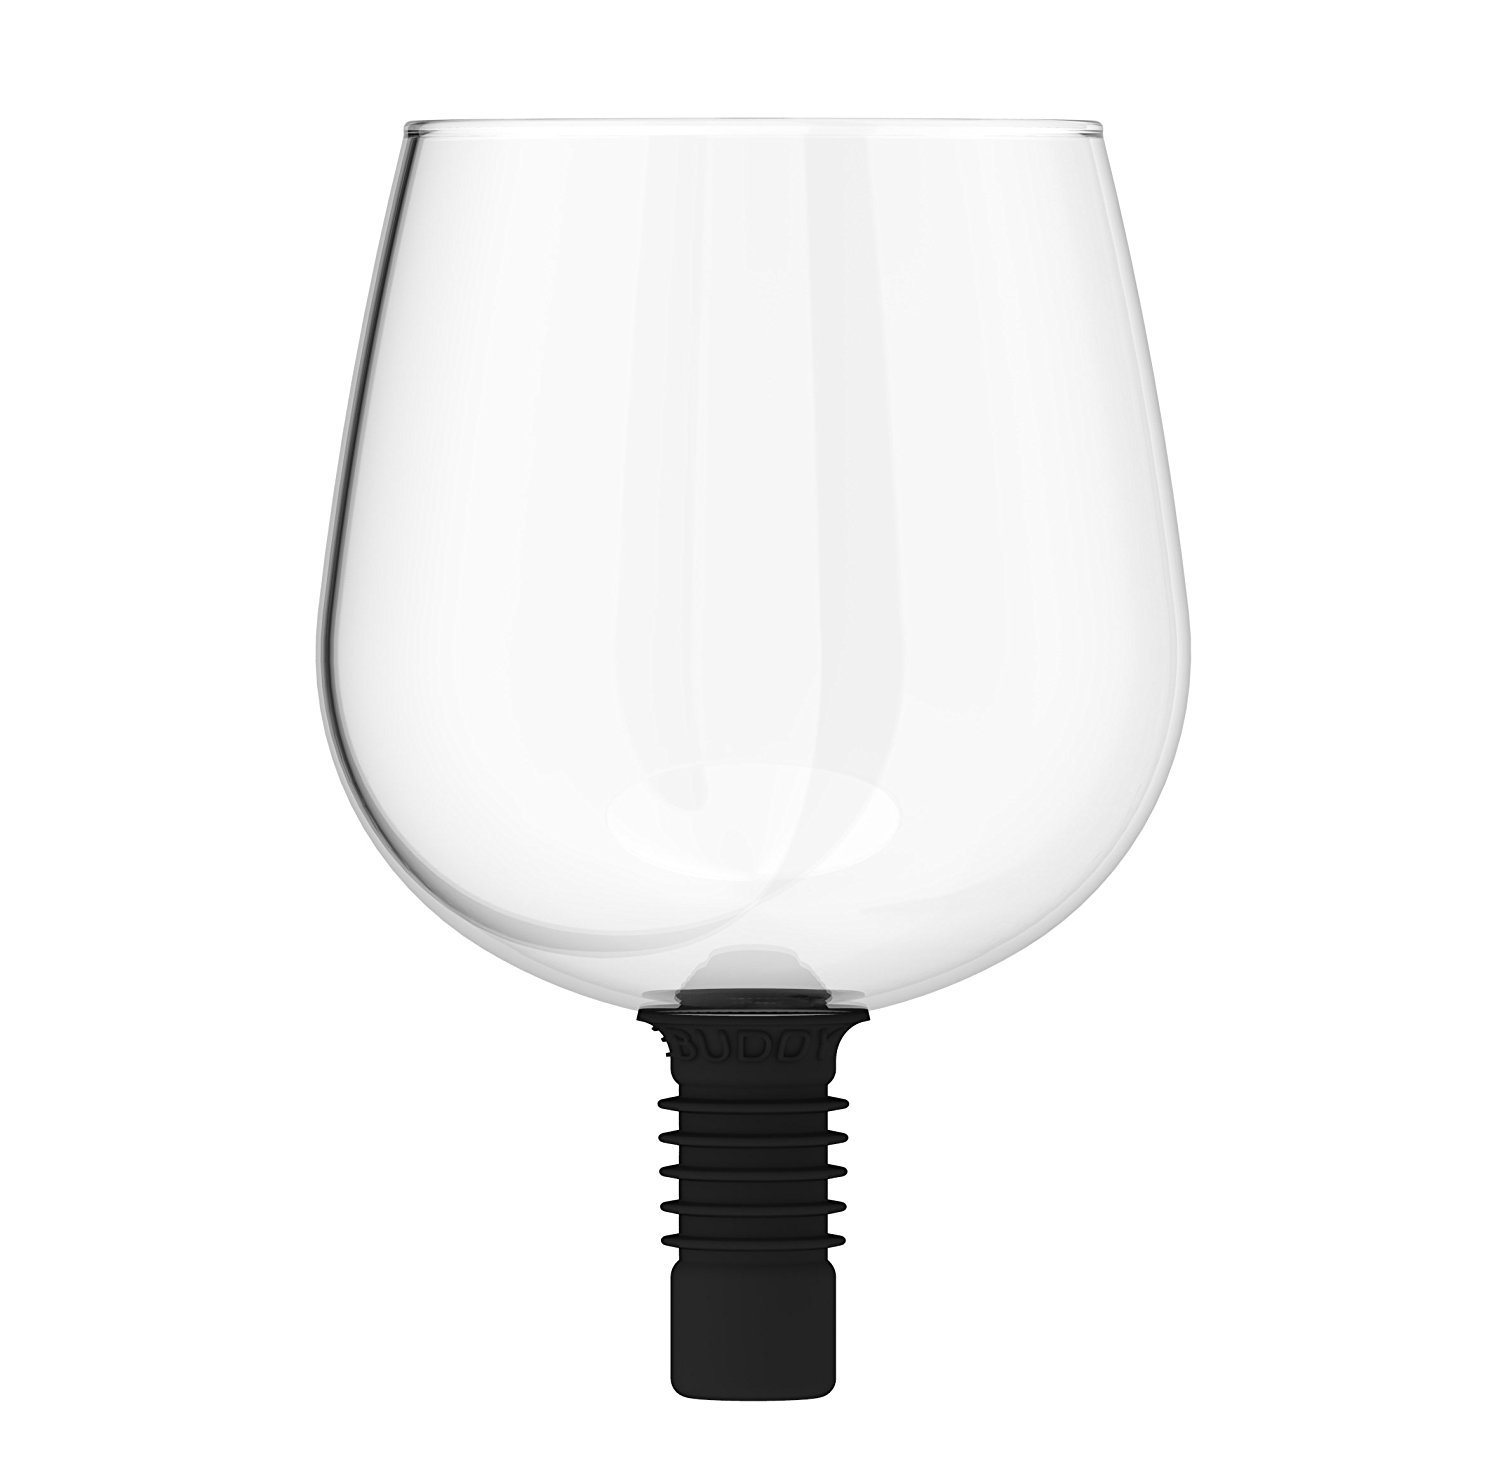 Guzzle Buddy 2GO Wine Glasses, It Turns Your Bottle of Wine Into Your Wine Glass-The Original, As seen on Shark Tank -17